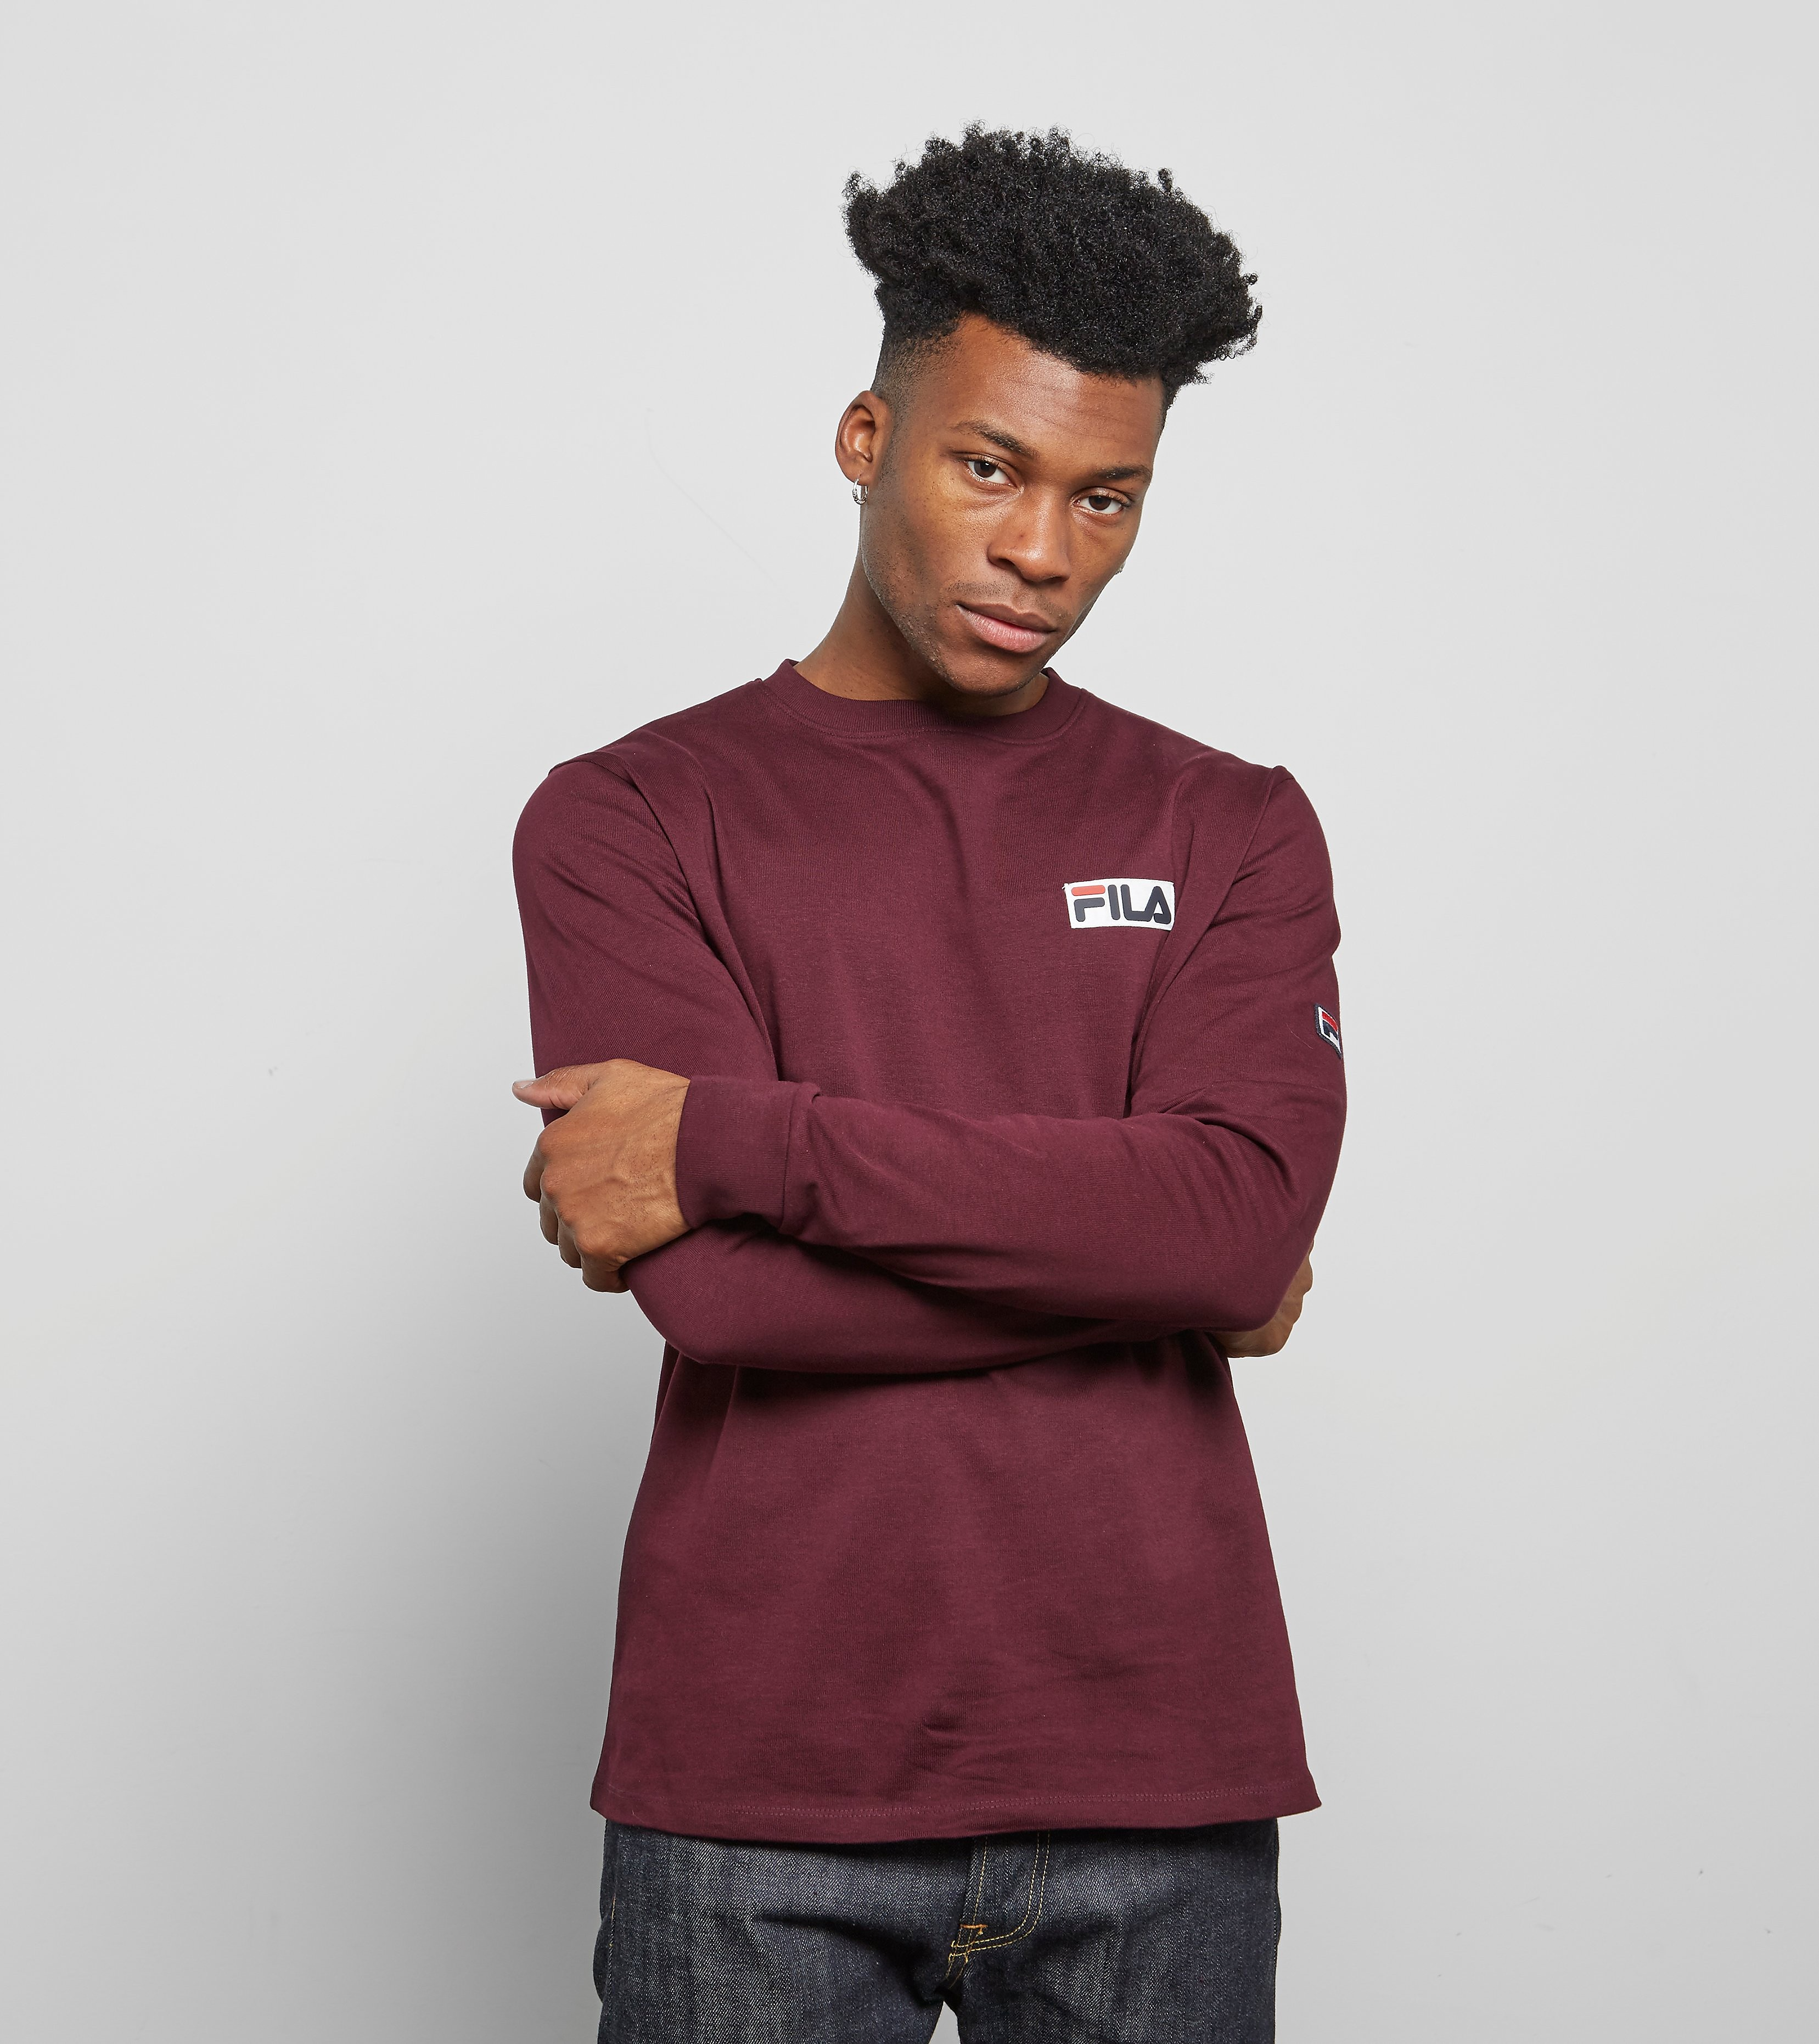 Fila Viso Long Sleeved T-Shirt - size? Exclusive